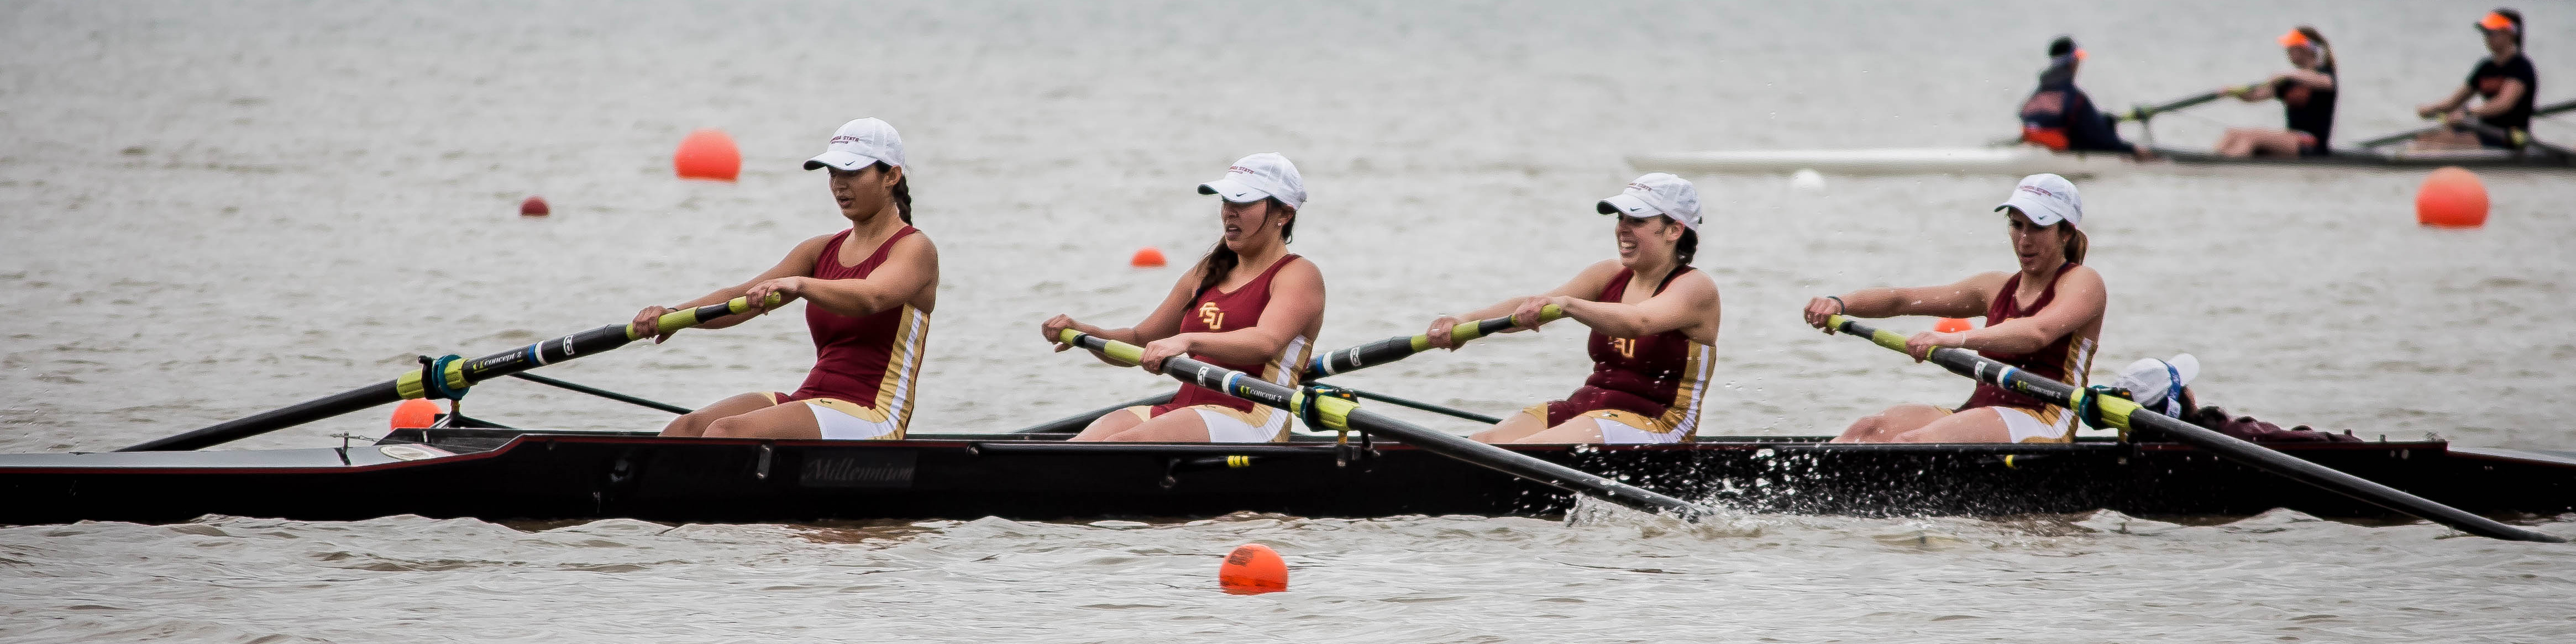 4 girls rowing